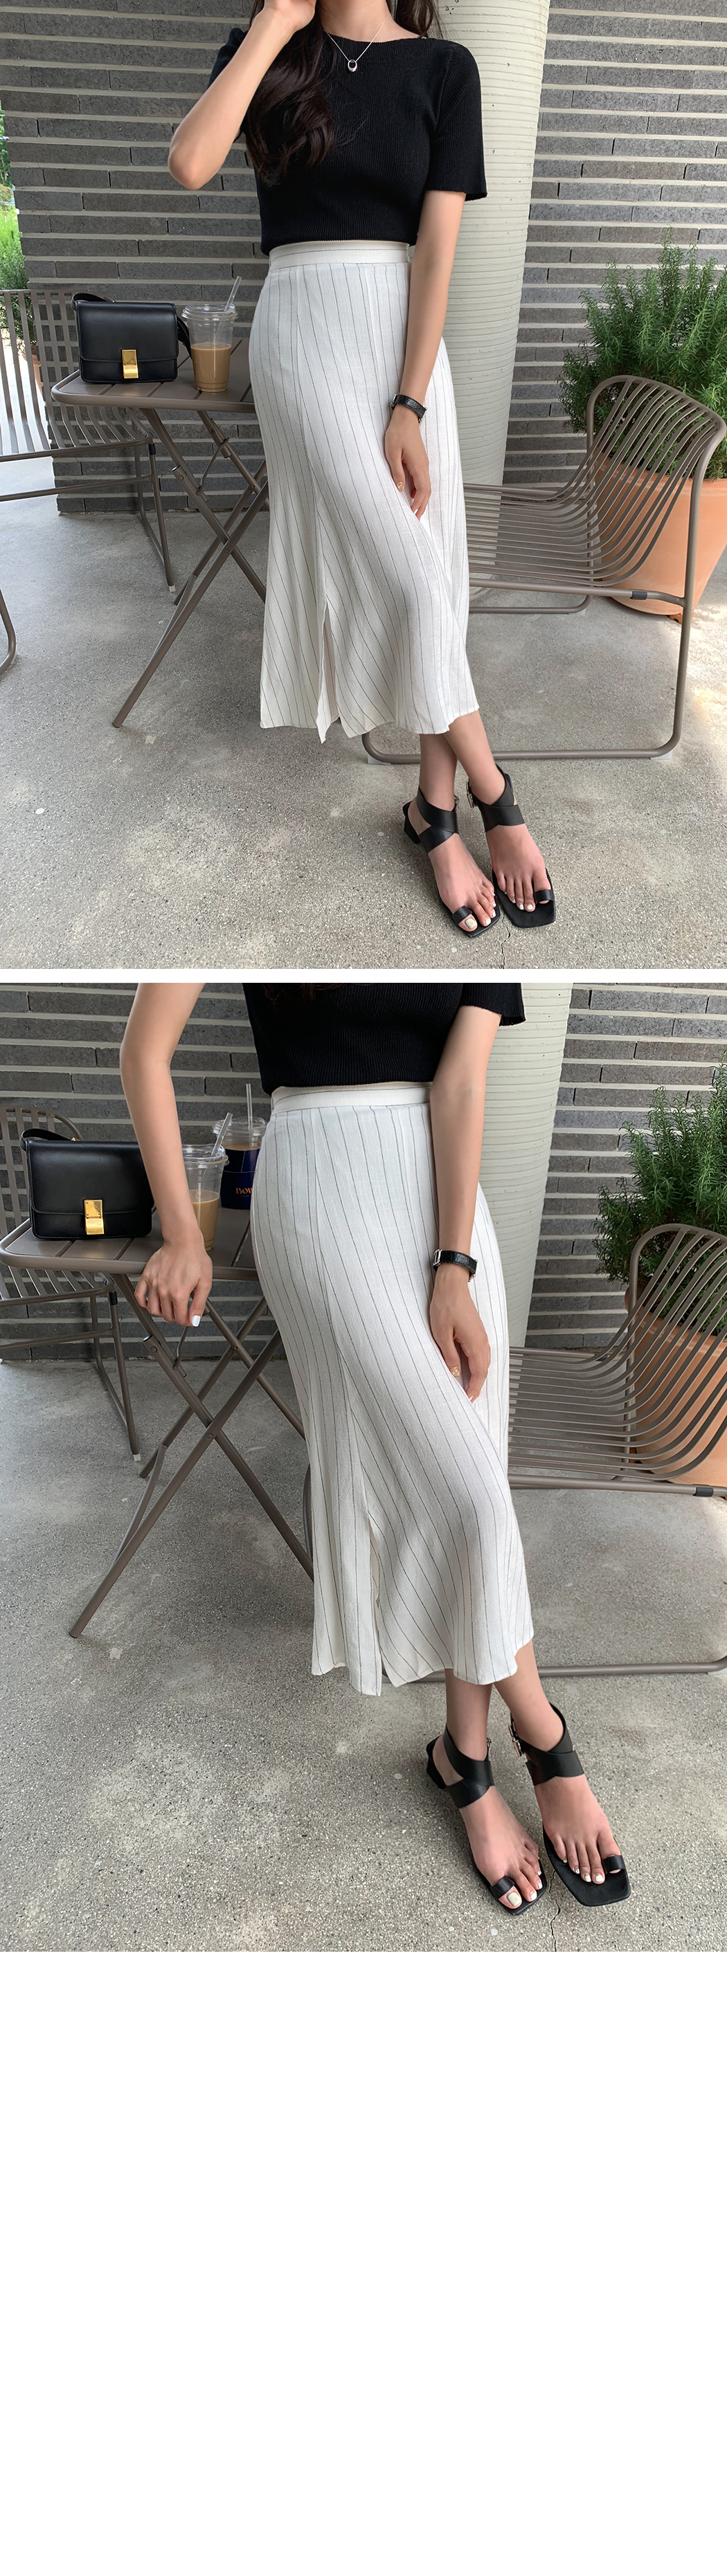 Char-linen striped skirt